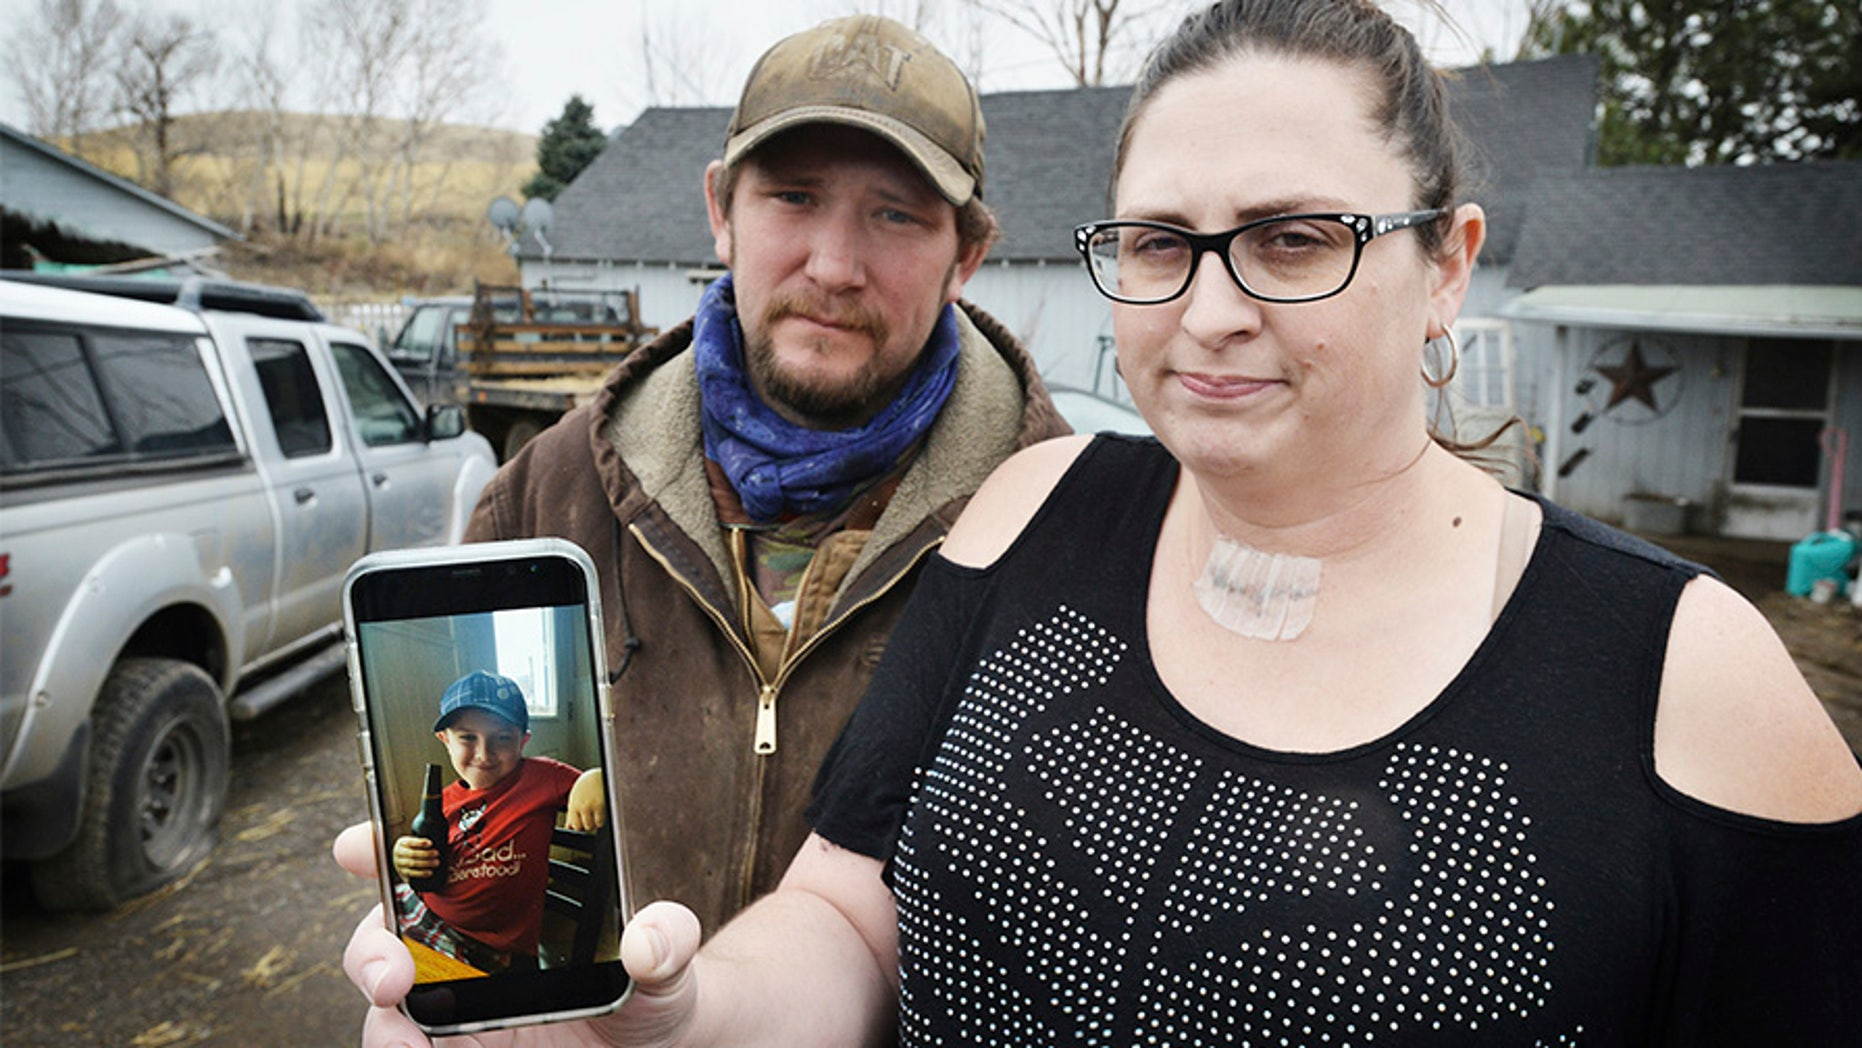 Scott Hinkle, left, and Sara Hebard, both of Pilot Rock, Oregon, lost their son, Liam Flanagan, 8, pictured in the cell phone photo, on Saturday, Jan. 21, 2018, after an eight-day battle with a flesh-eating bacteria.  (E.J. Harris /East Oregonian via AP)